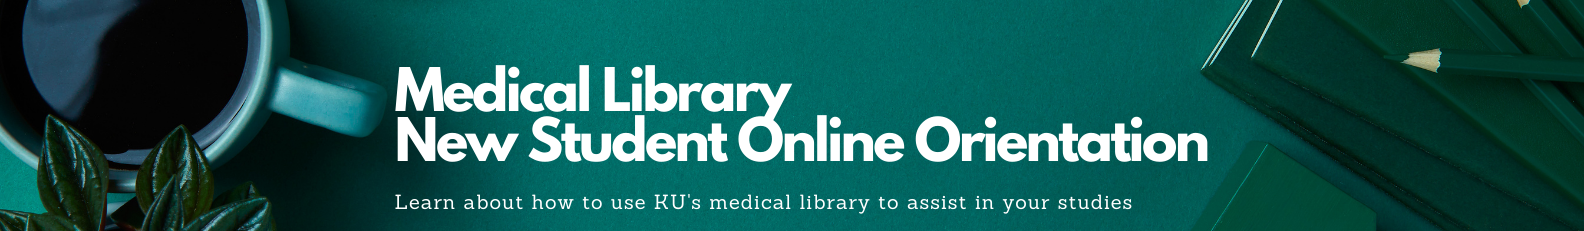 Image for link to medical library new student orientation